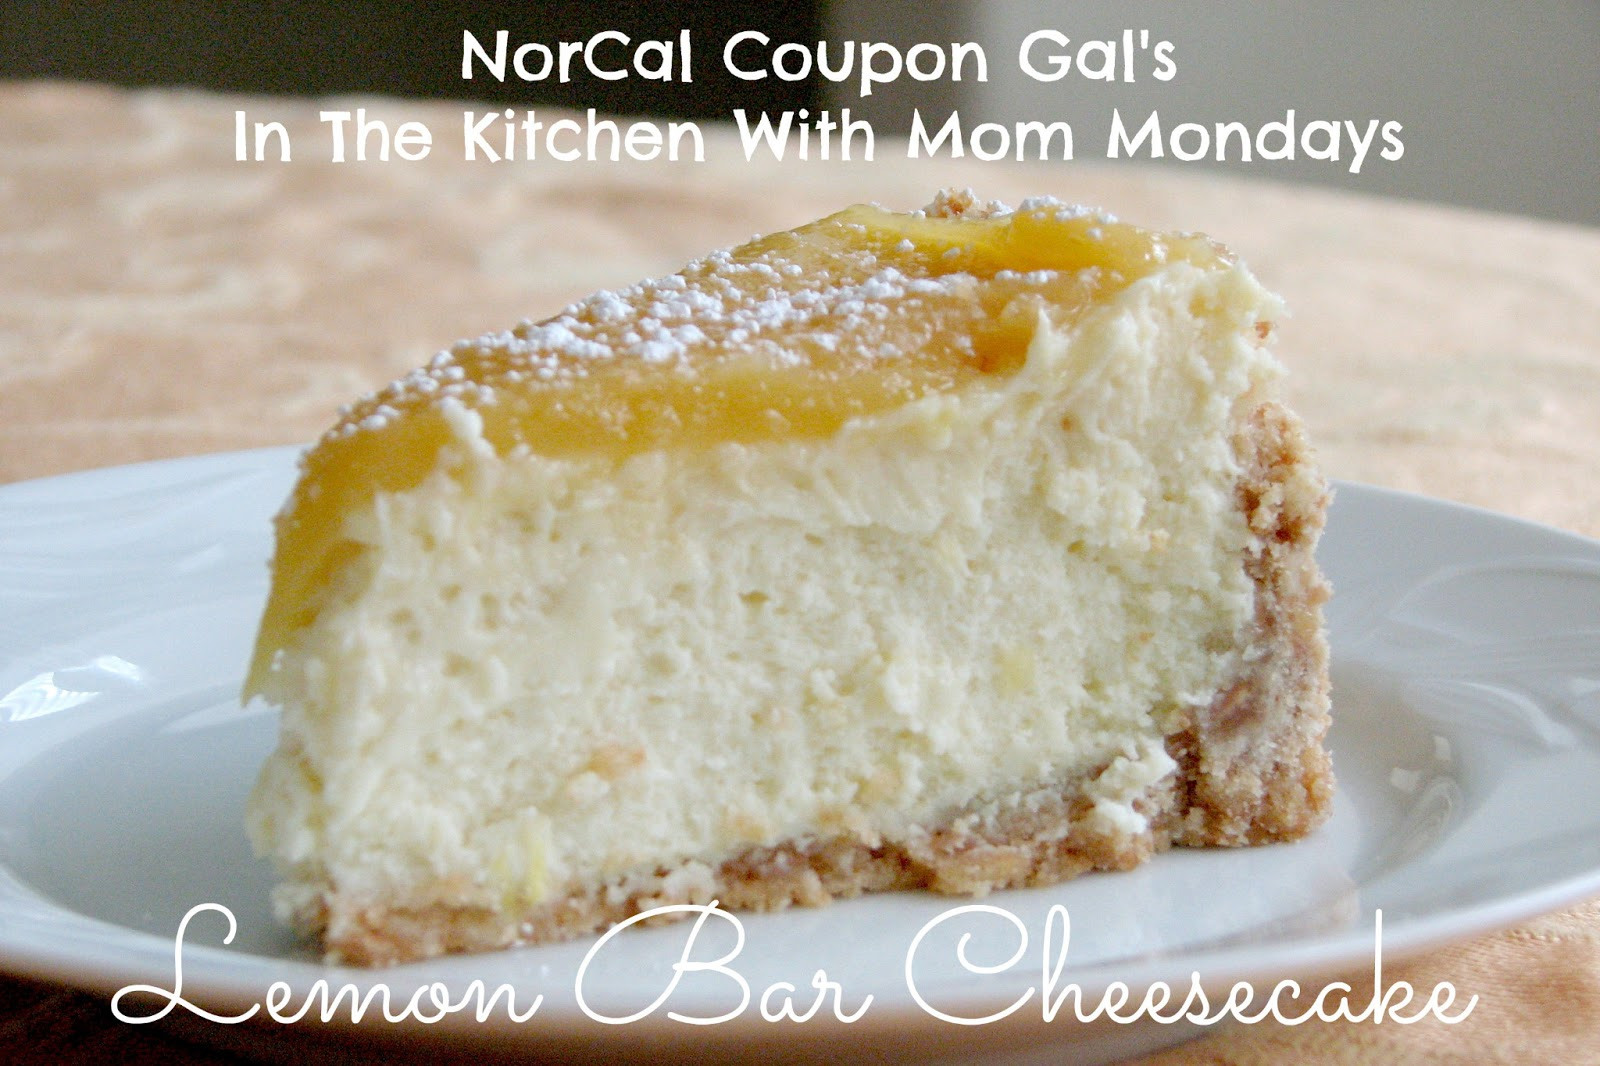 In The Kitchen With Mom Mondays – Lemon bar cheesecake